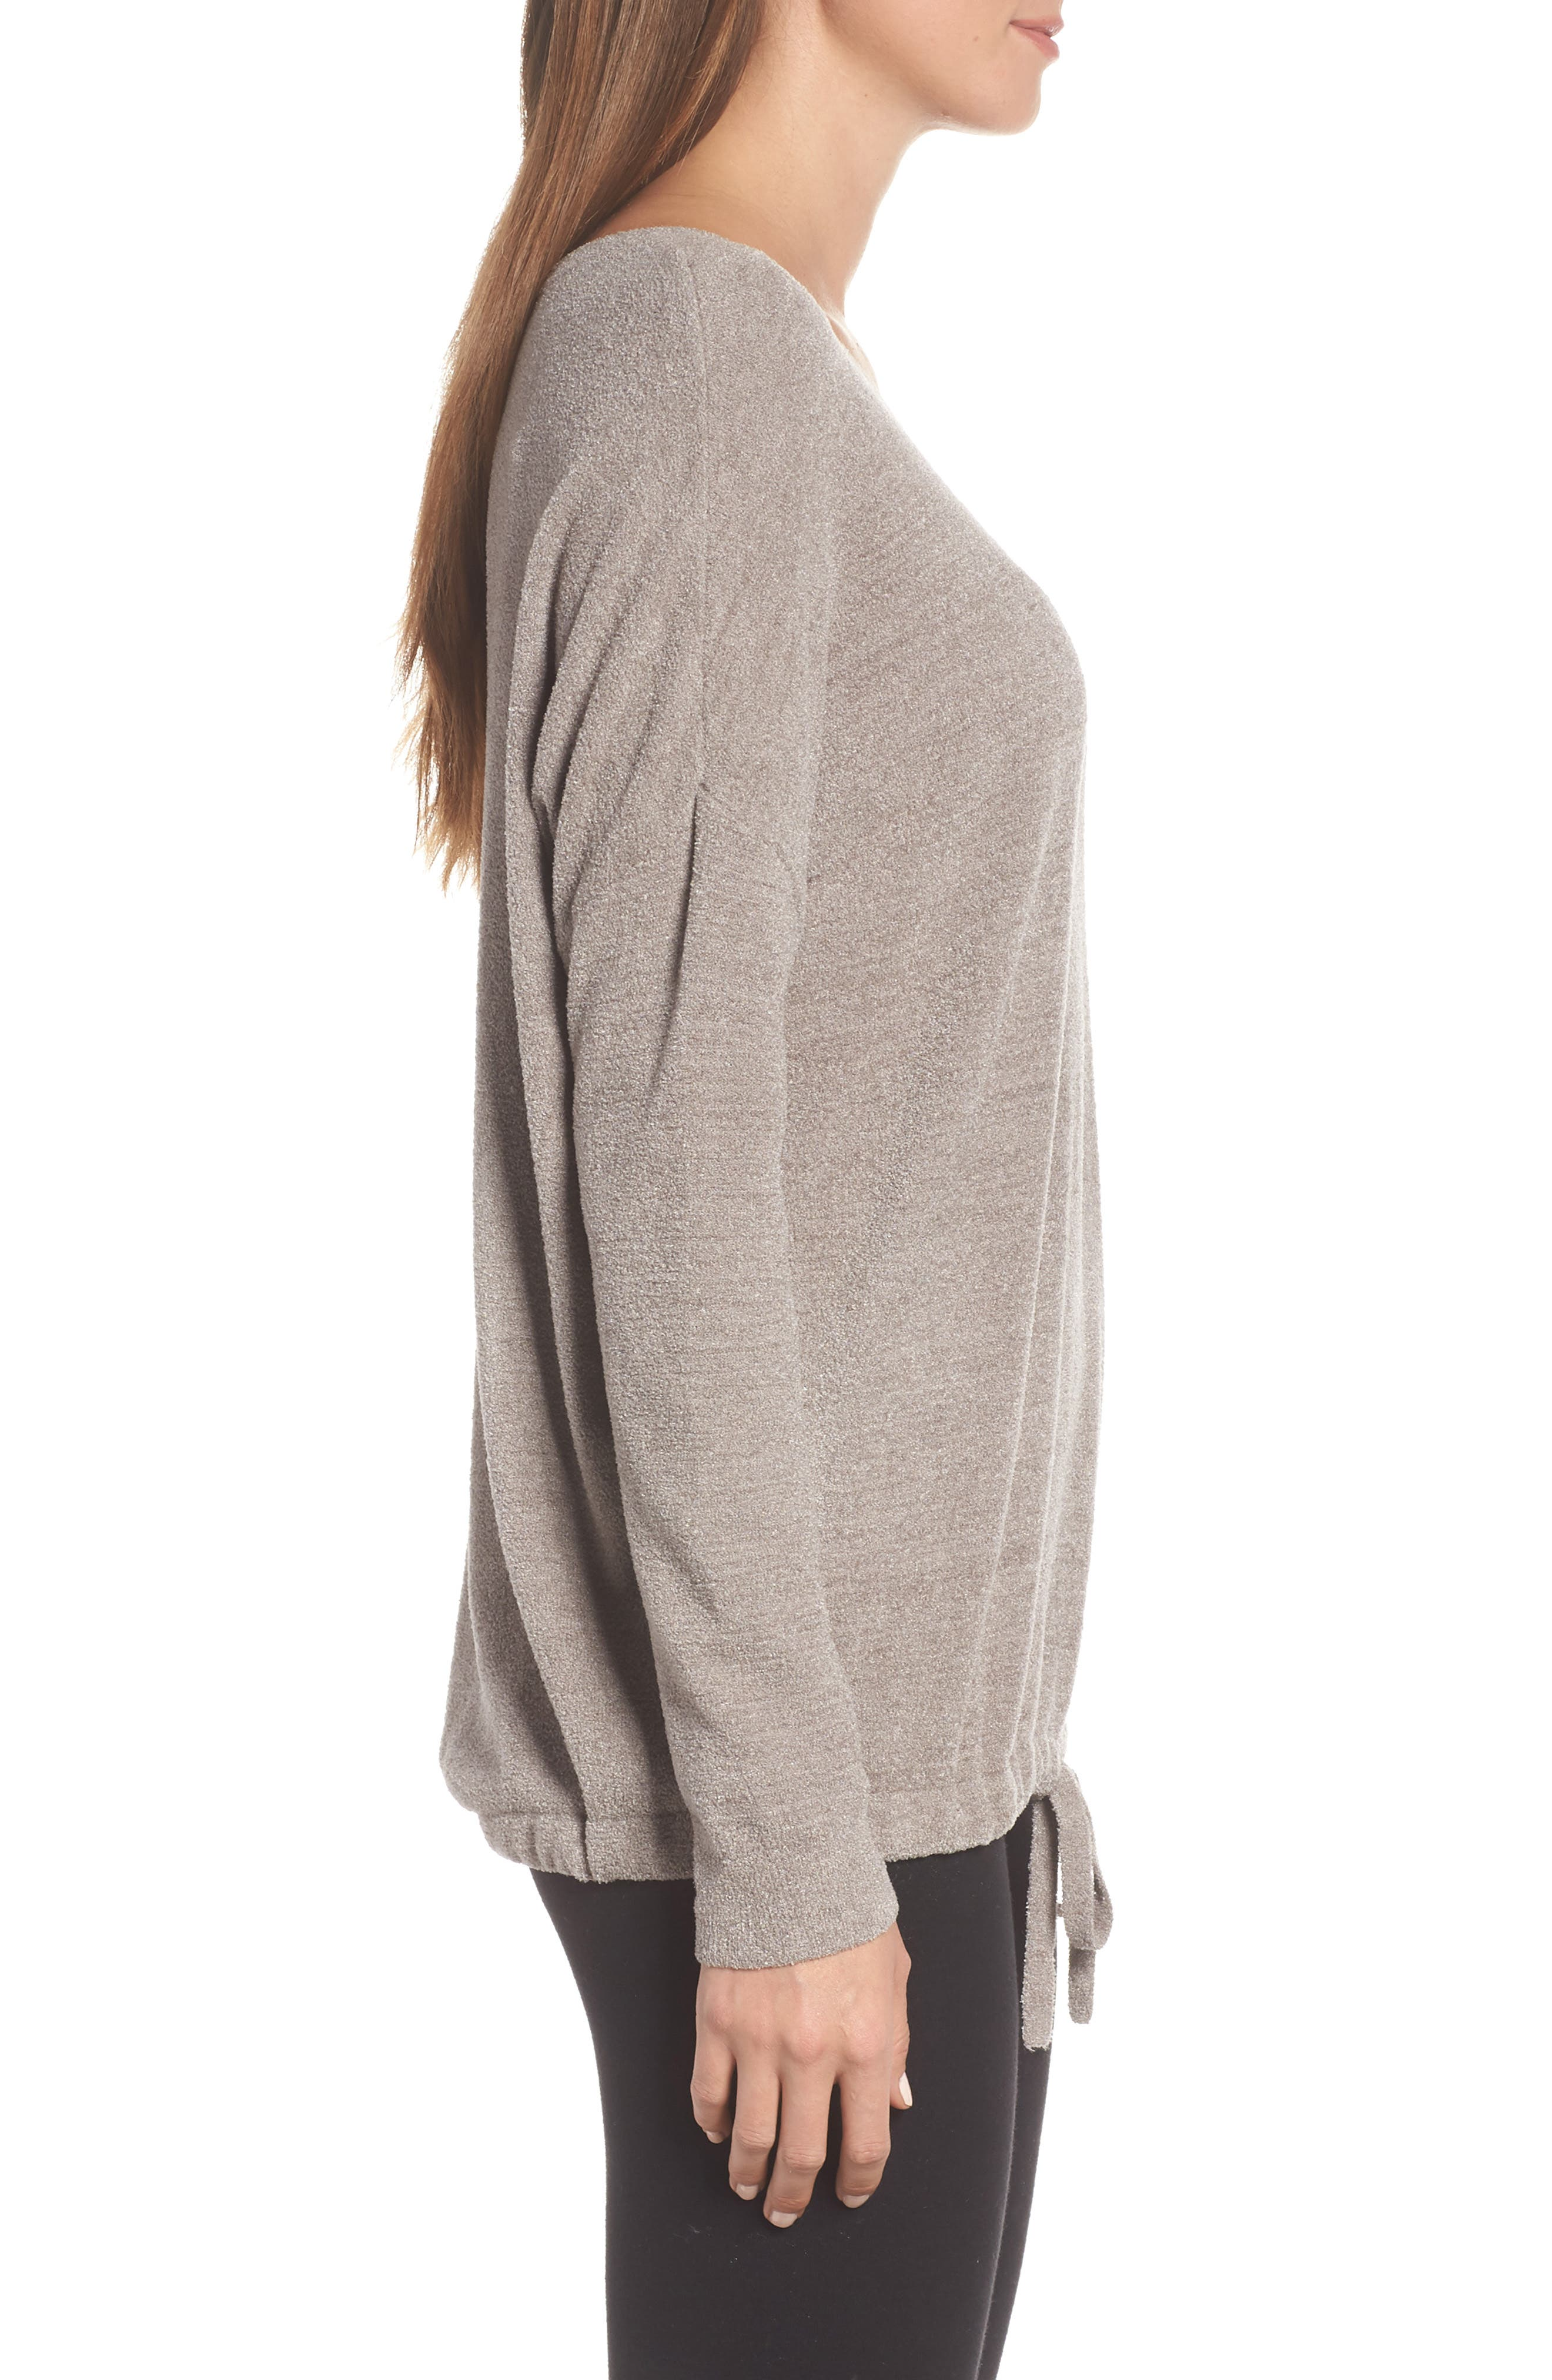 Cozychic Ultra Lite<sup>®</sup> Lounge Pullover,                             Alternate thumbnail 3, color,                             BEACH ROCK